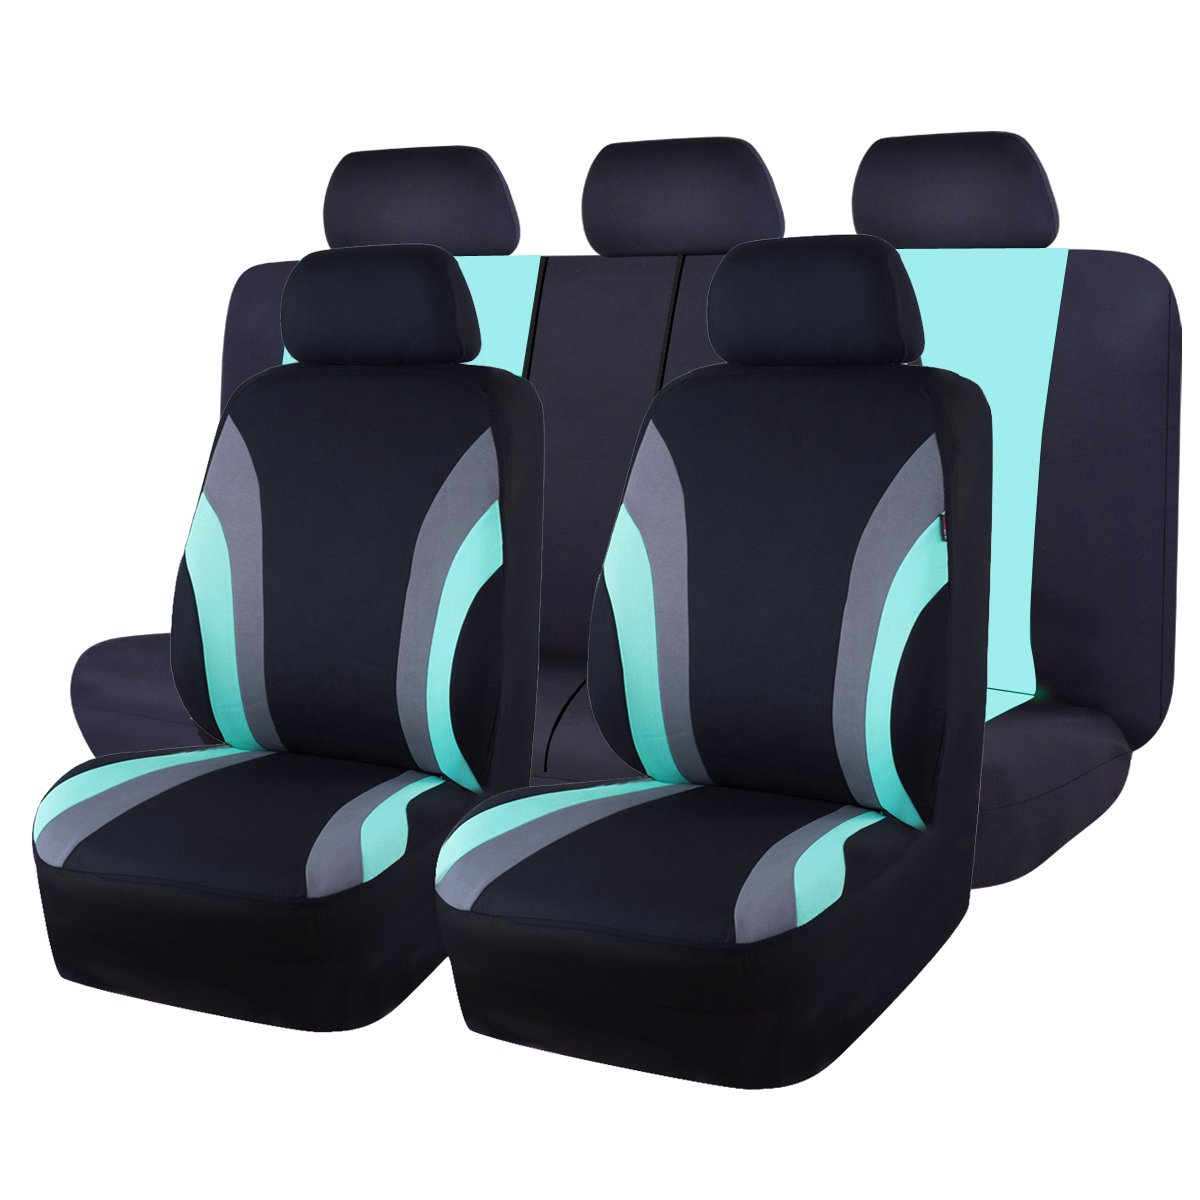 AUTOYOUTH Universal Fit Car Seat Covers Full Set 11pcs Car Seat Cover Front Seat Covers /& Split Bench Covers Airbag Compatible